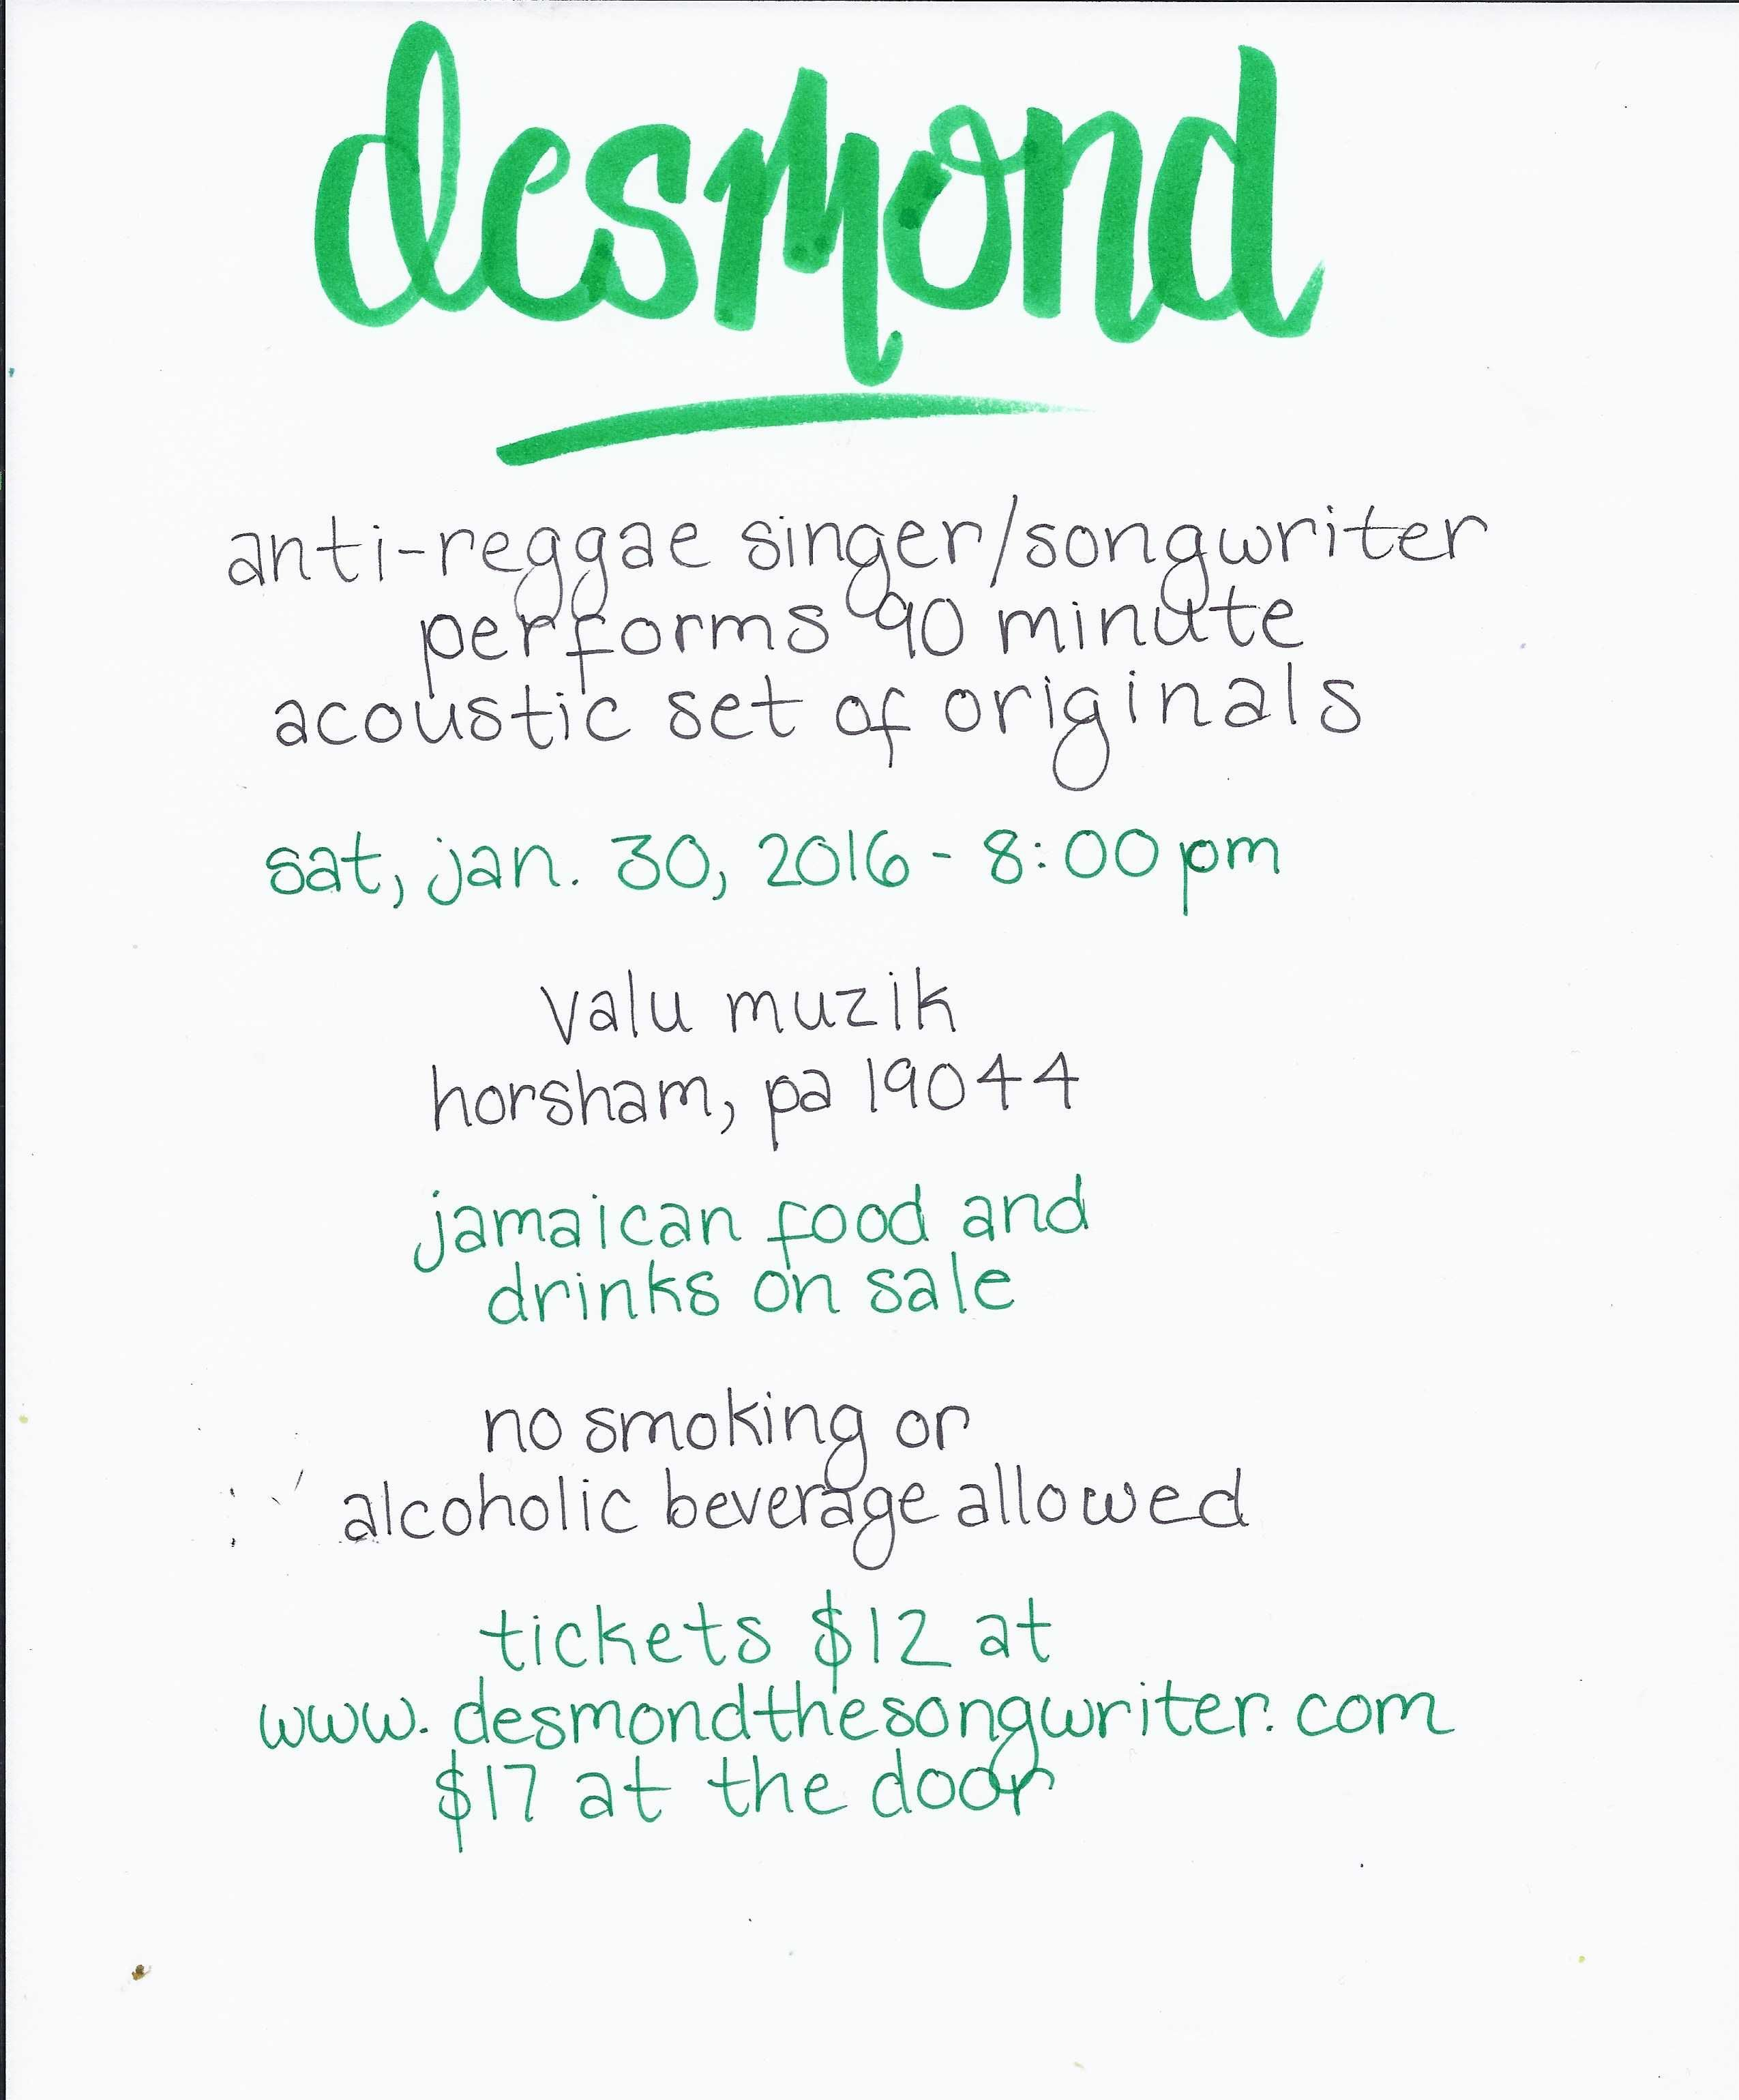 Pin by desmond on desmond's activities | Alcoholic drinks ...